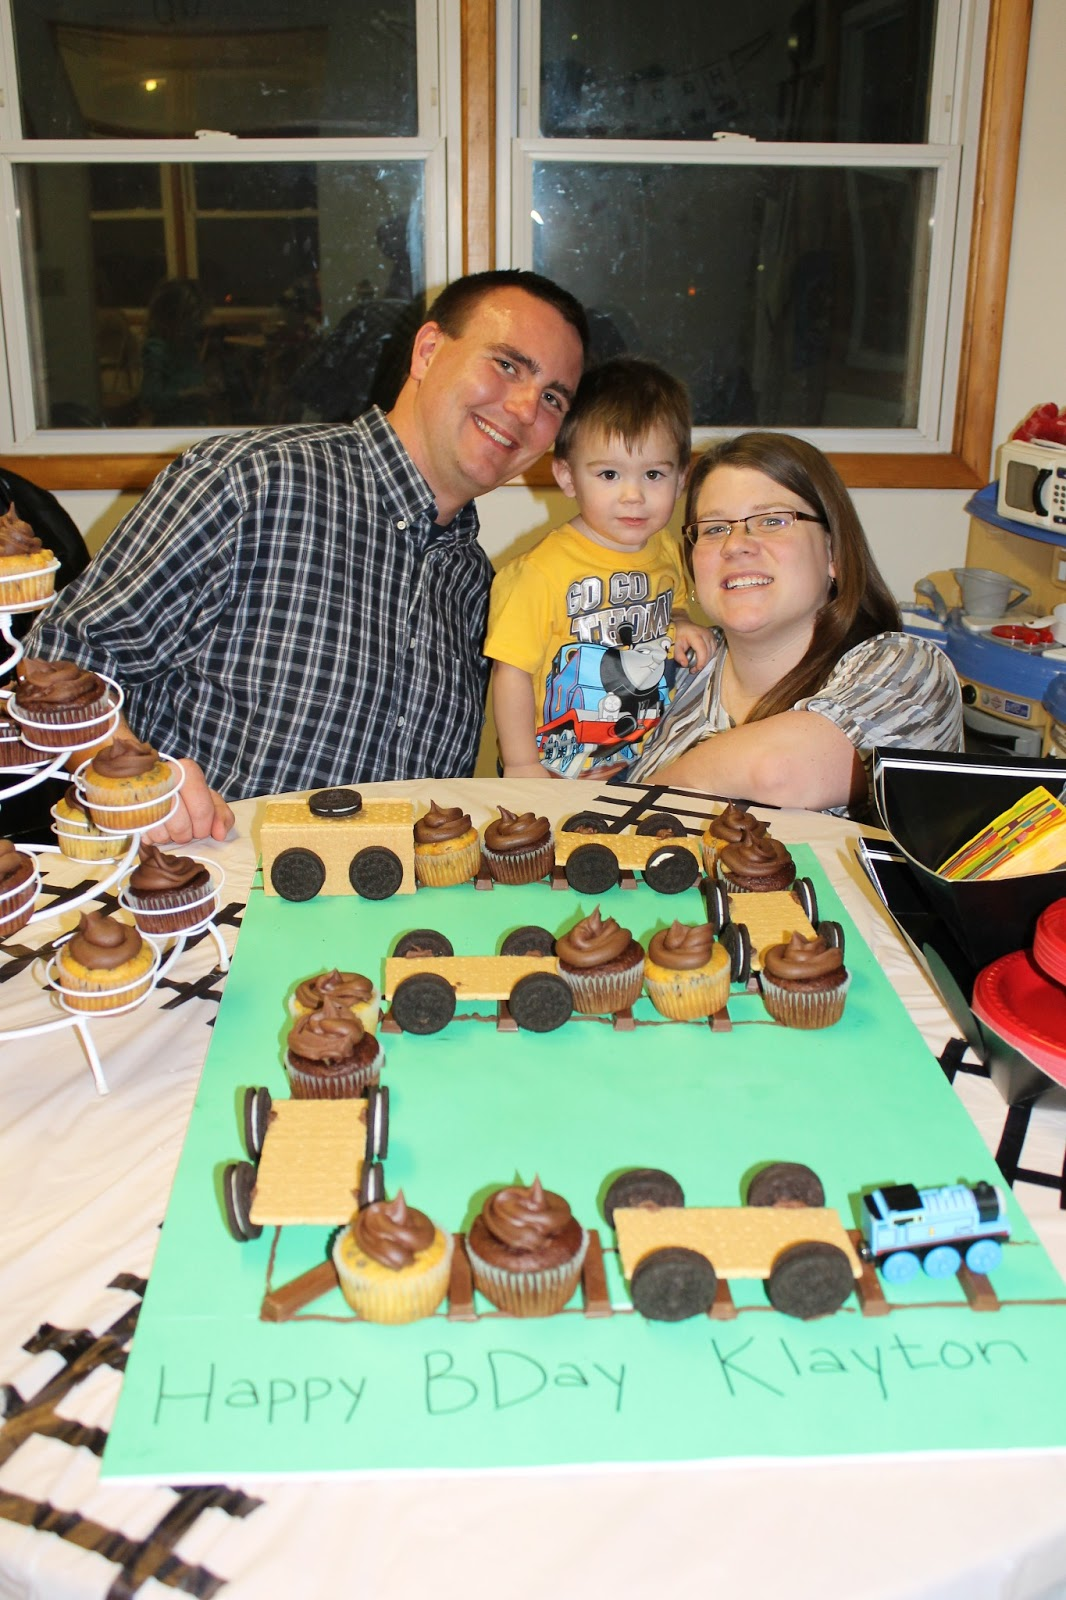 My Farmer LP And I Next To His Train Cupcakes Made A Railroad Track Out Of Kit Kats Frosting In The Shape 2